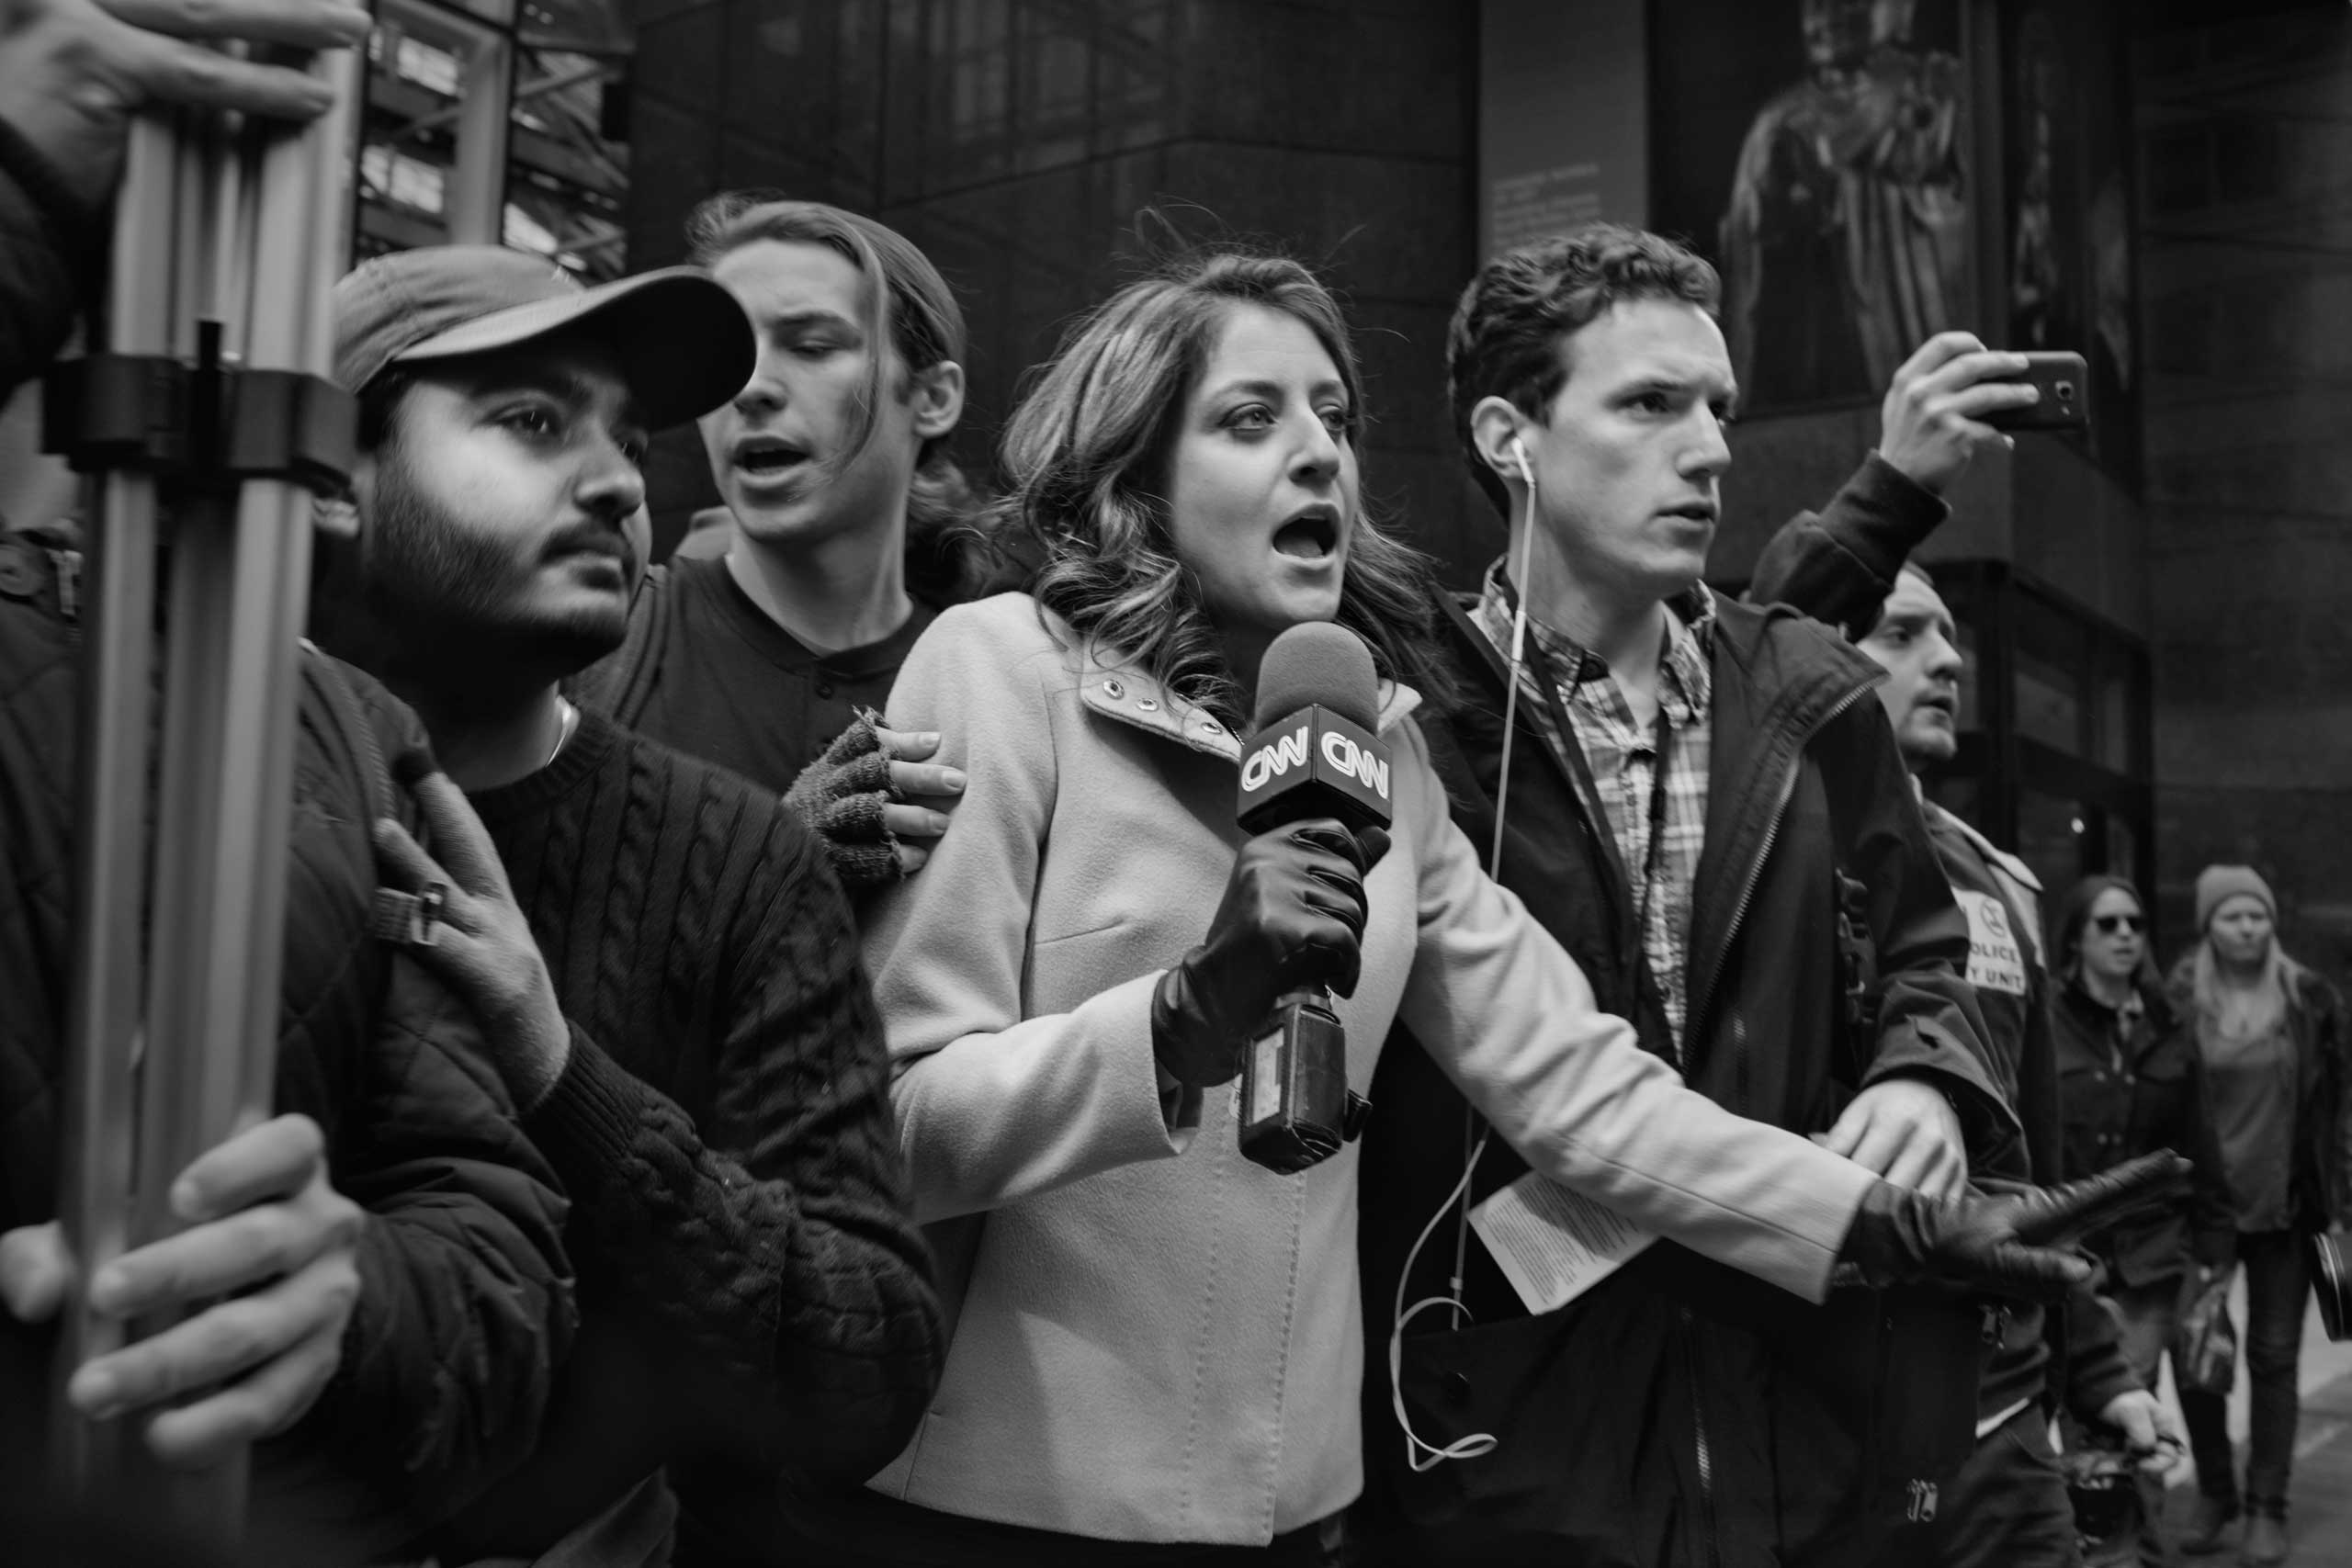 March 19, 2016 - New York, New York: CNN correspondent Sara Ganim (center) observes the arrest of a person by the NYPD after a small skirmish at a rally against republican candidate Donald J. Trump in Midtown.